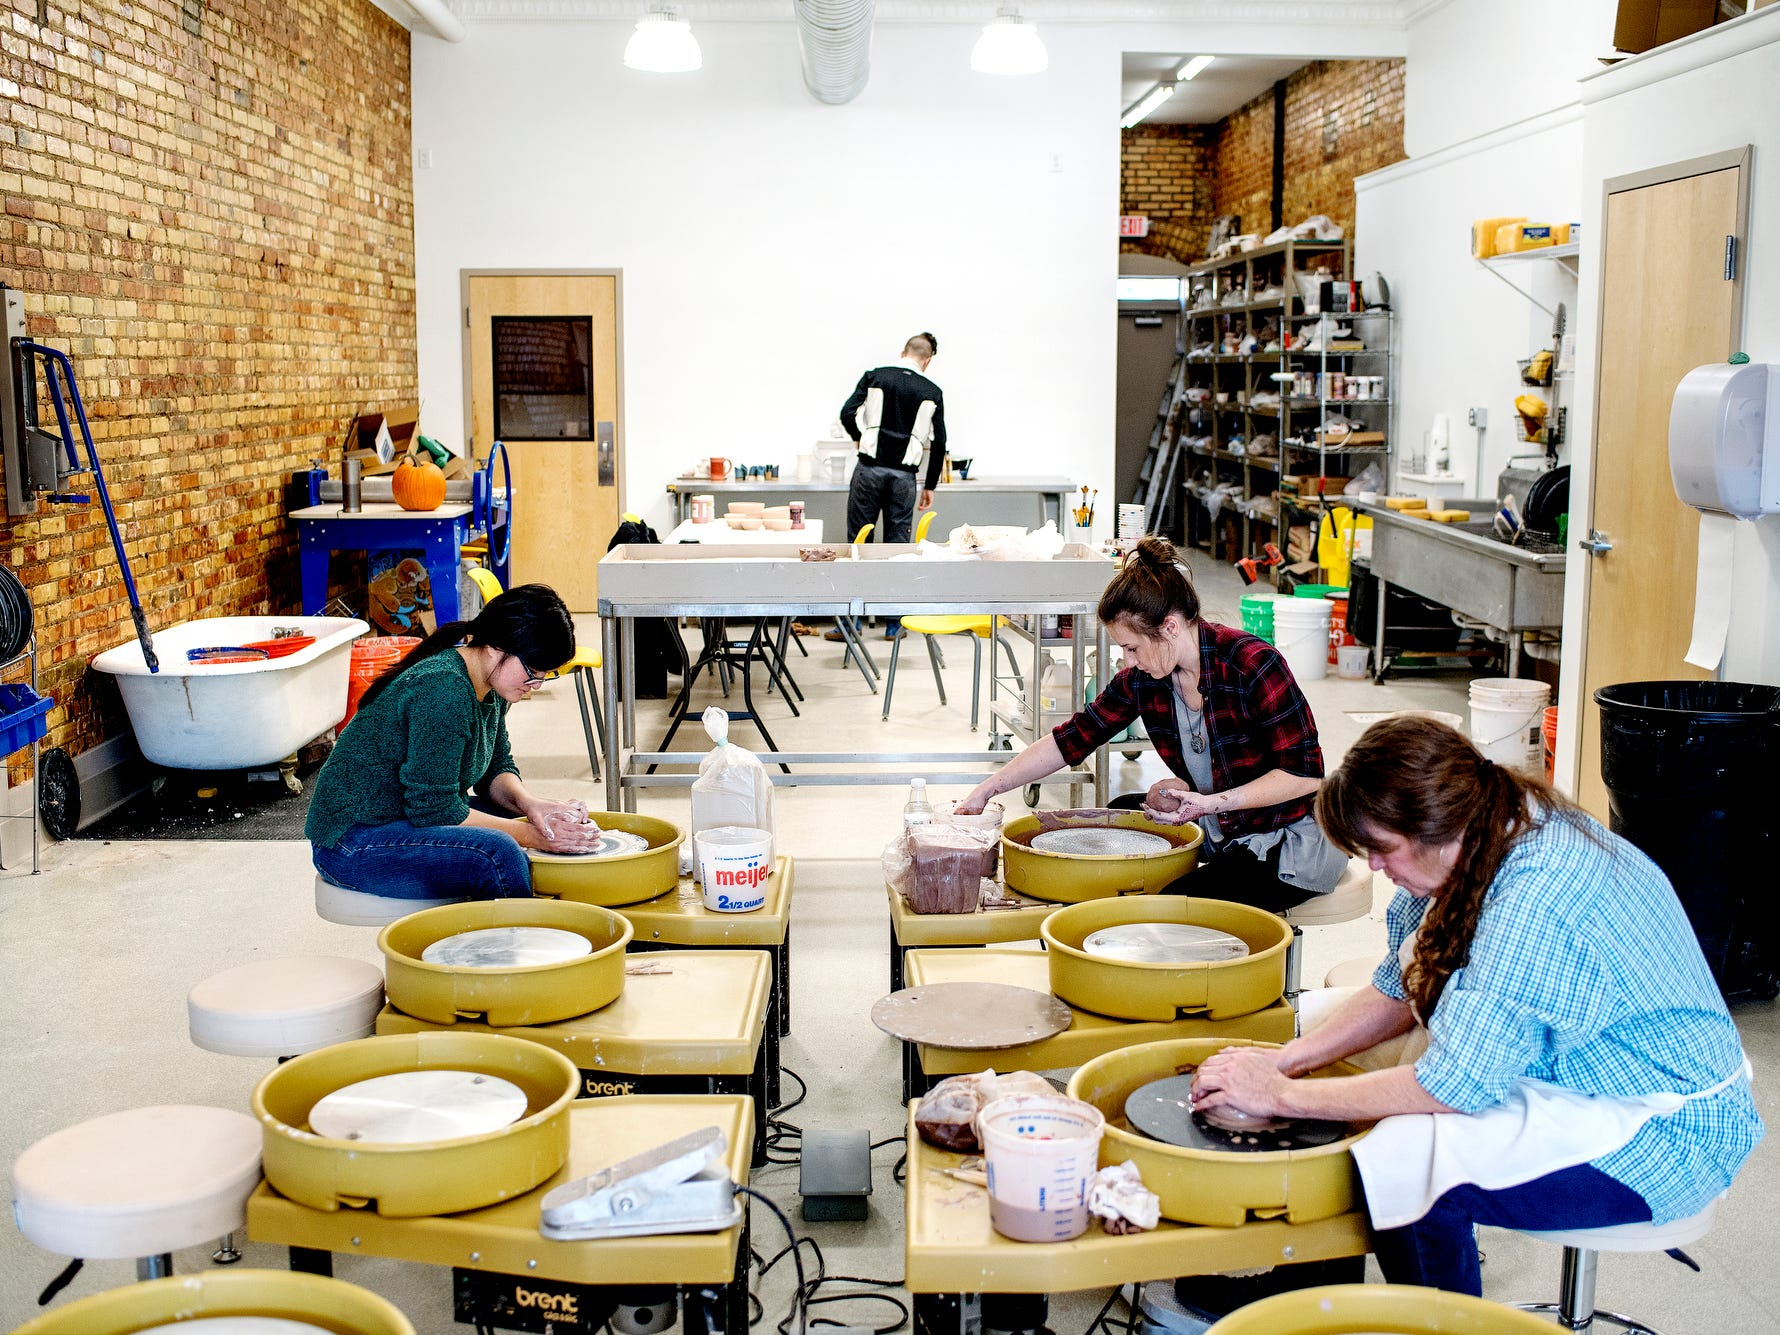 From left, Sandra Wong, Jessica Dart and Carole Schmidt work on pottery at the Wheel House Studio on Wednesday, Nov. 14, 2018, in Lansing.